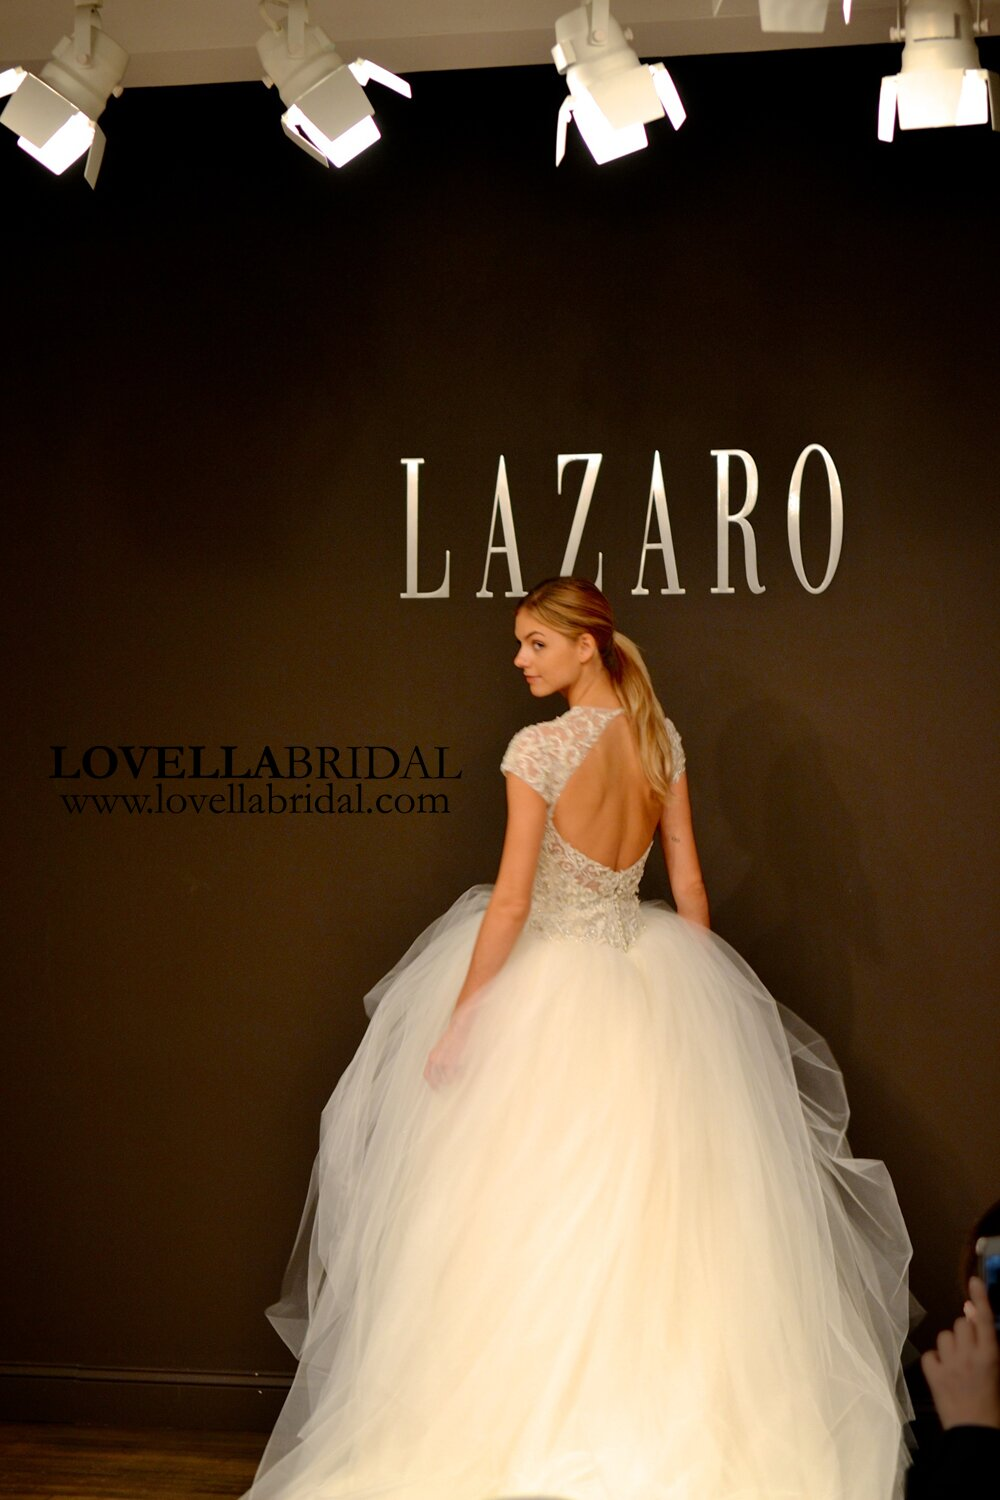 Lazaro wedding dresses 2014 pictures ideas guide to for Where to buy lazaro wedding dresses